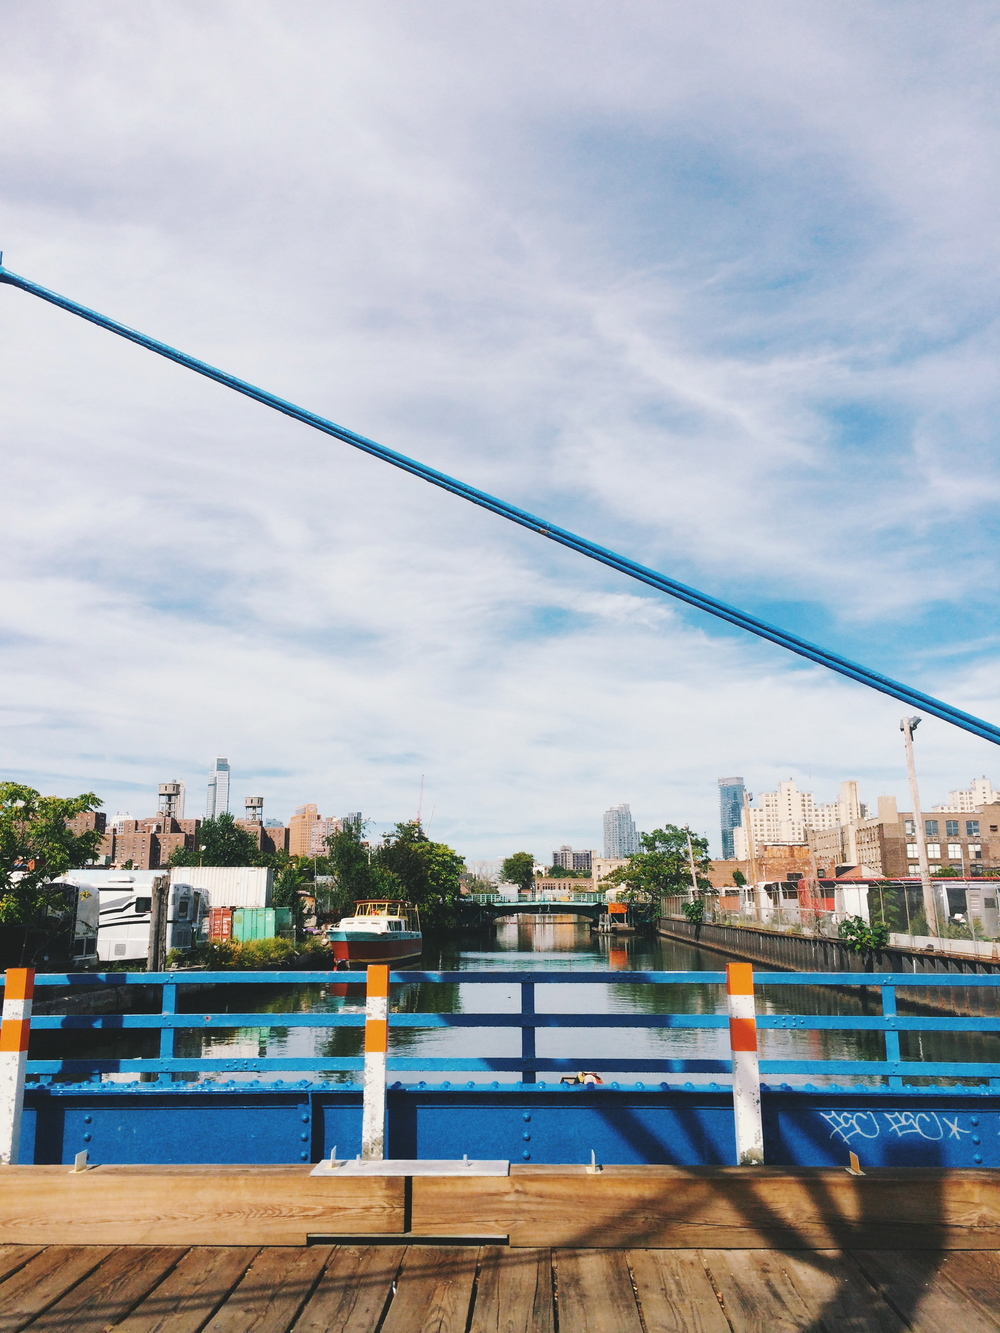 a view of the gowanus canal from the bridge.